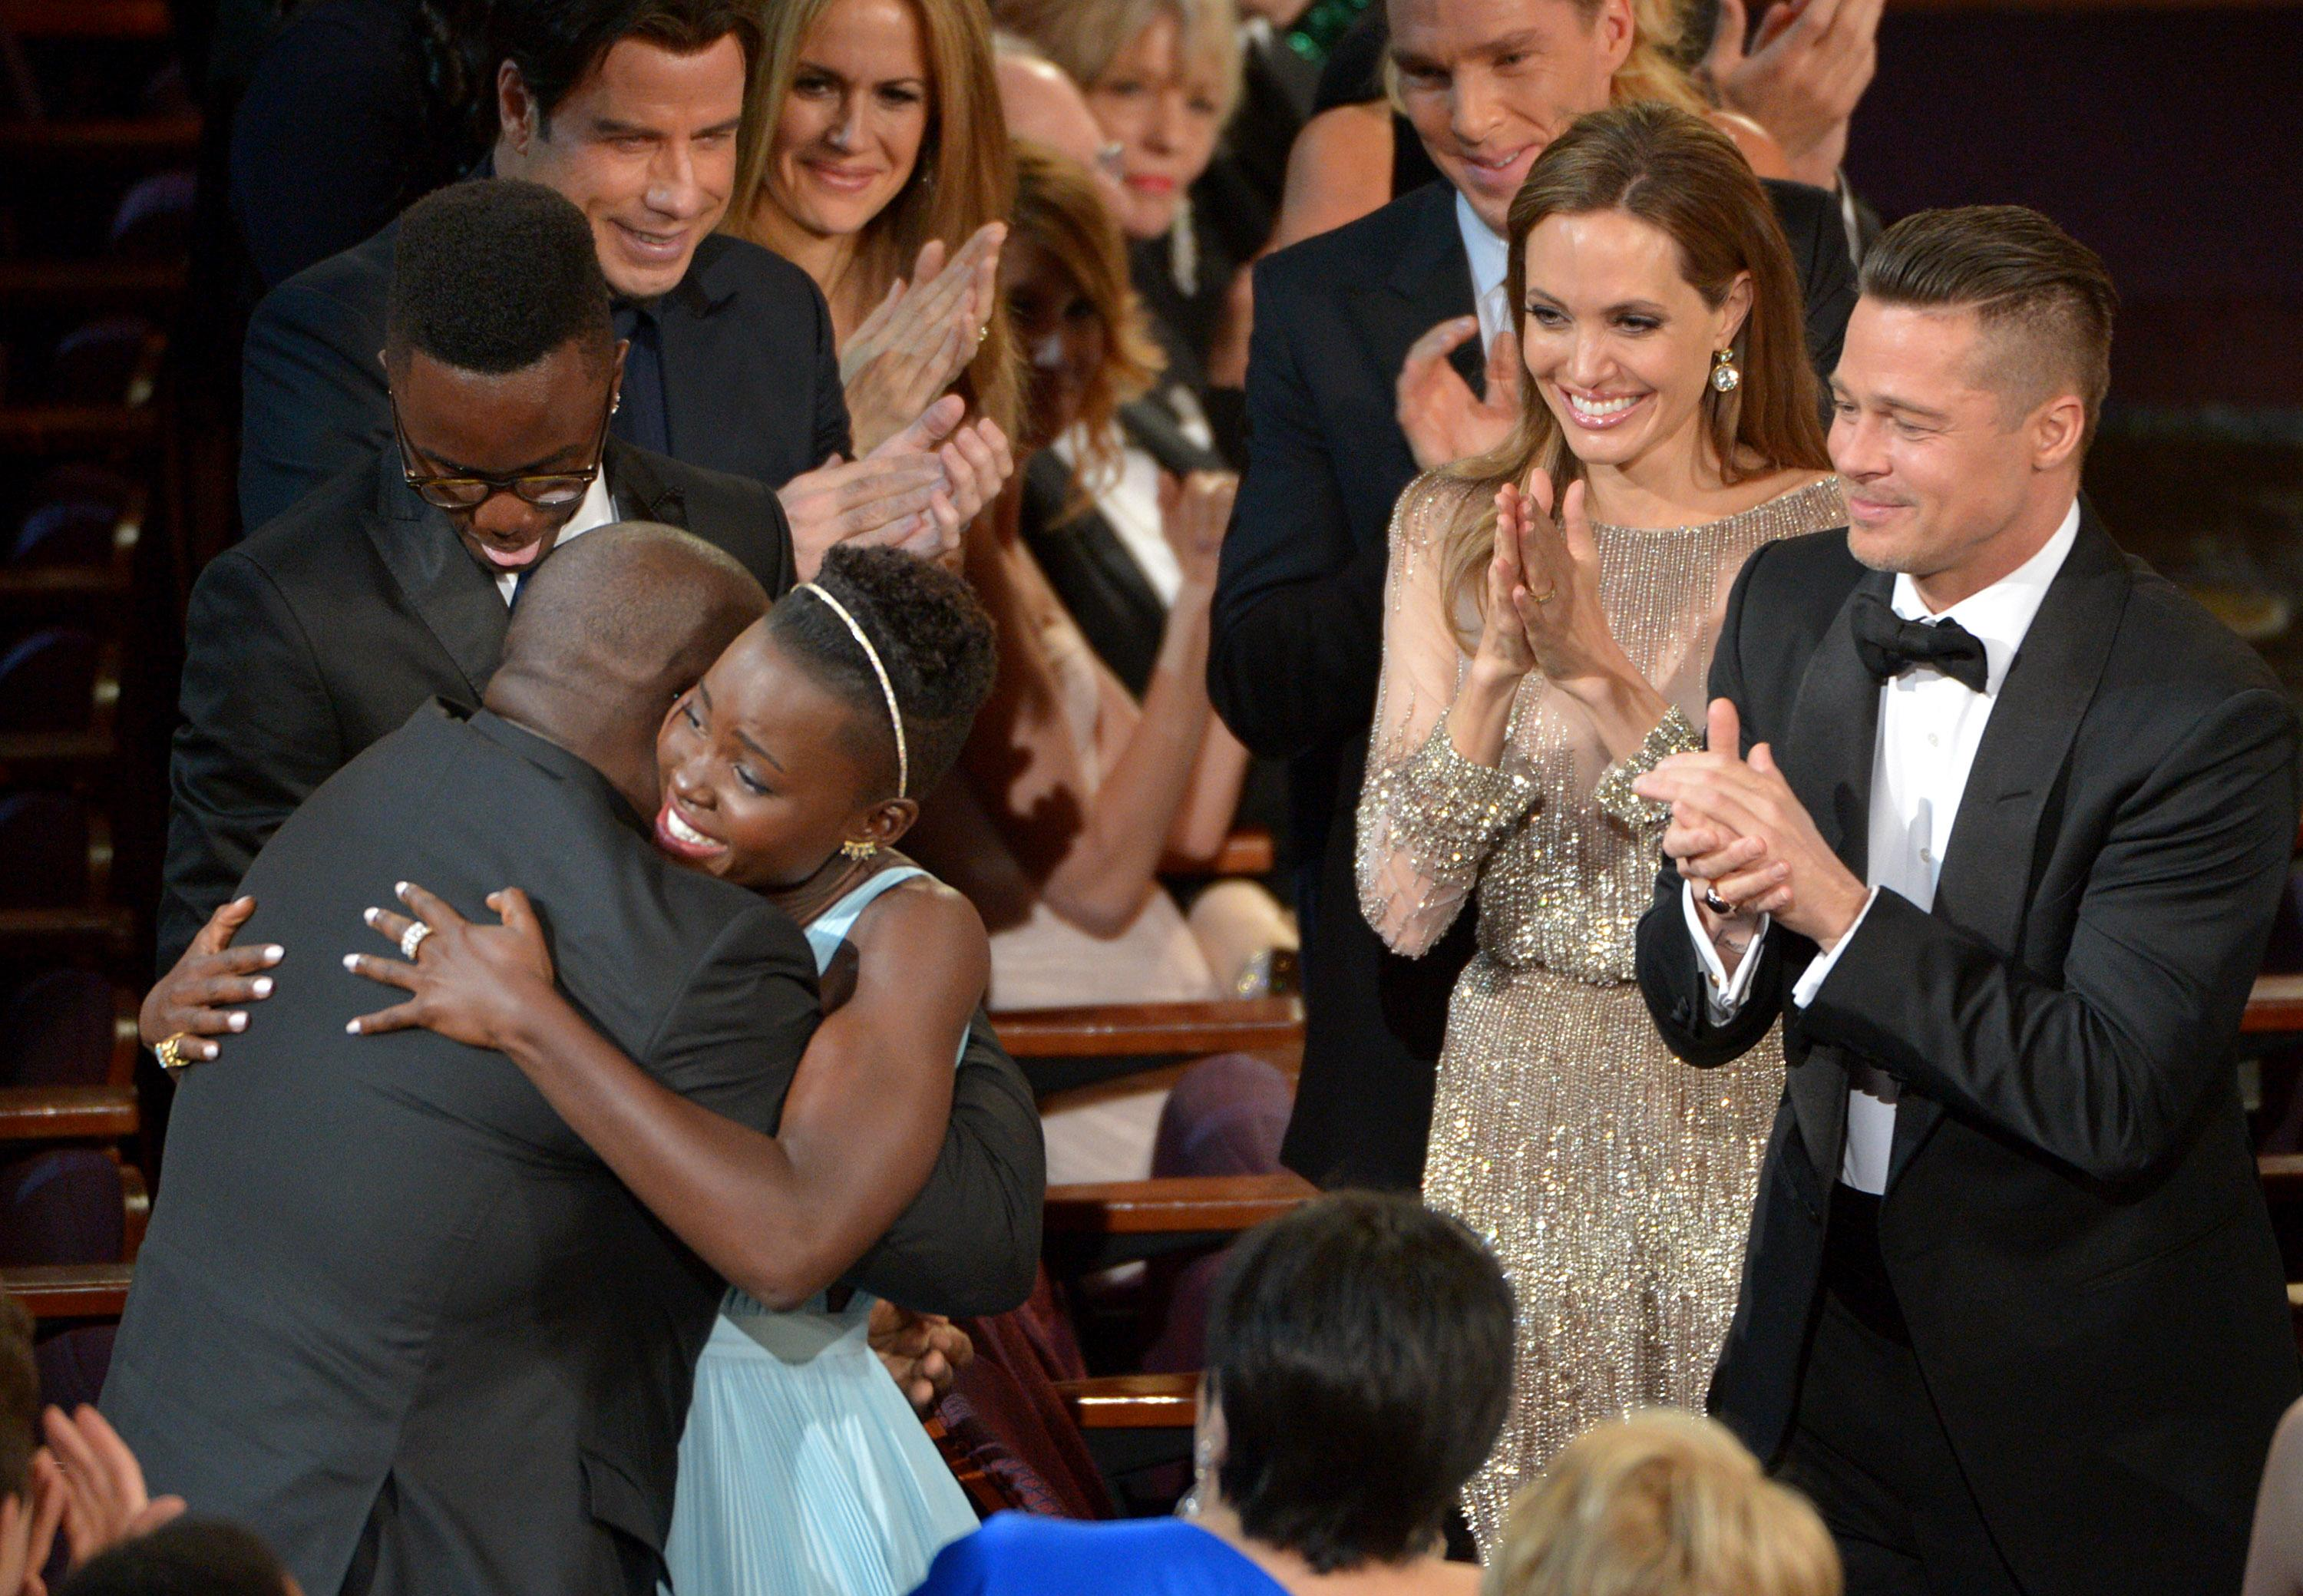 """Director Steve McQueen, left, congratulates Lupita Nyong'o on her win for best actress in a supporting role for """"12 Years a Slave"""" as her brother Peter, background from left, and actors John Travolta, Kelly Preston, Benedict Cumberbatch, Angelina Jolie and Brad Pitt, look on, during the Oscars at the Dolby Theatre on Sunday, March 2, 2014, in Los Angeles. (Photo by John Shearer/Invision/AP)"""